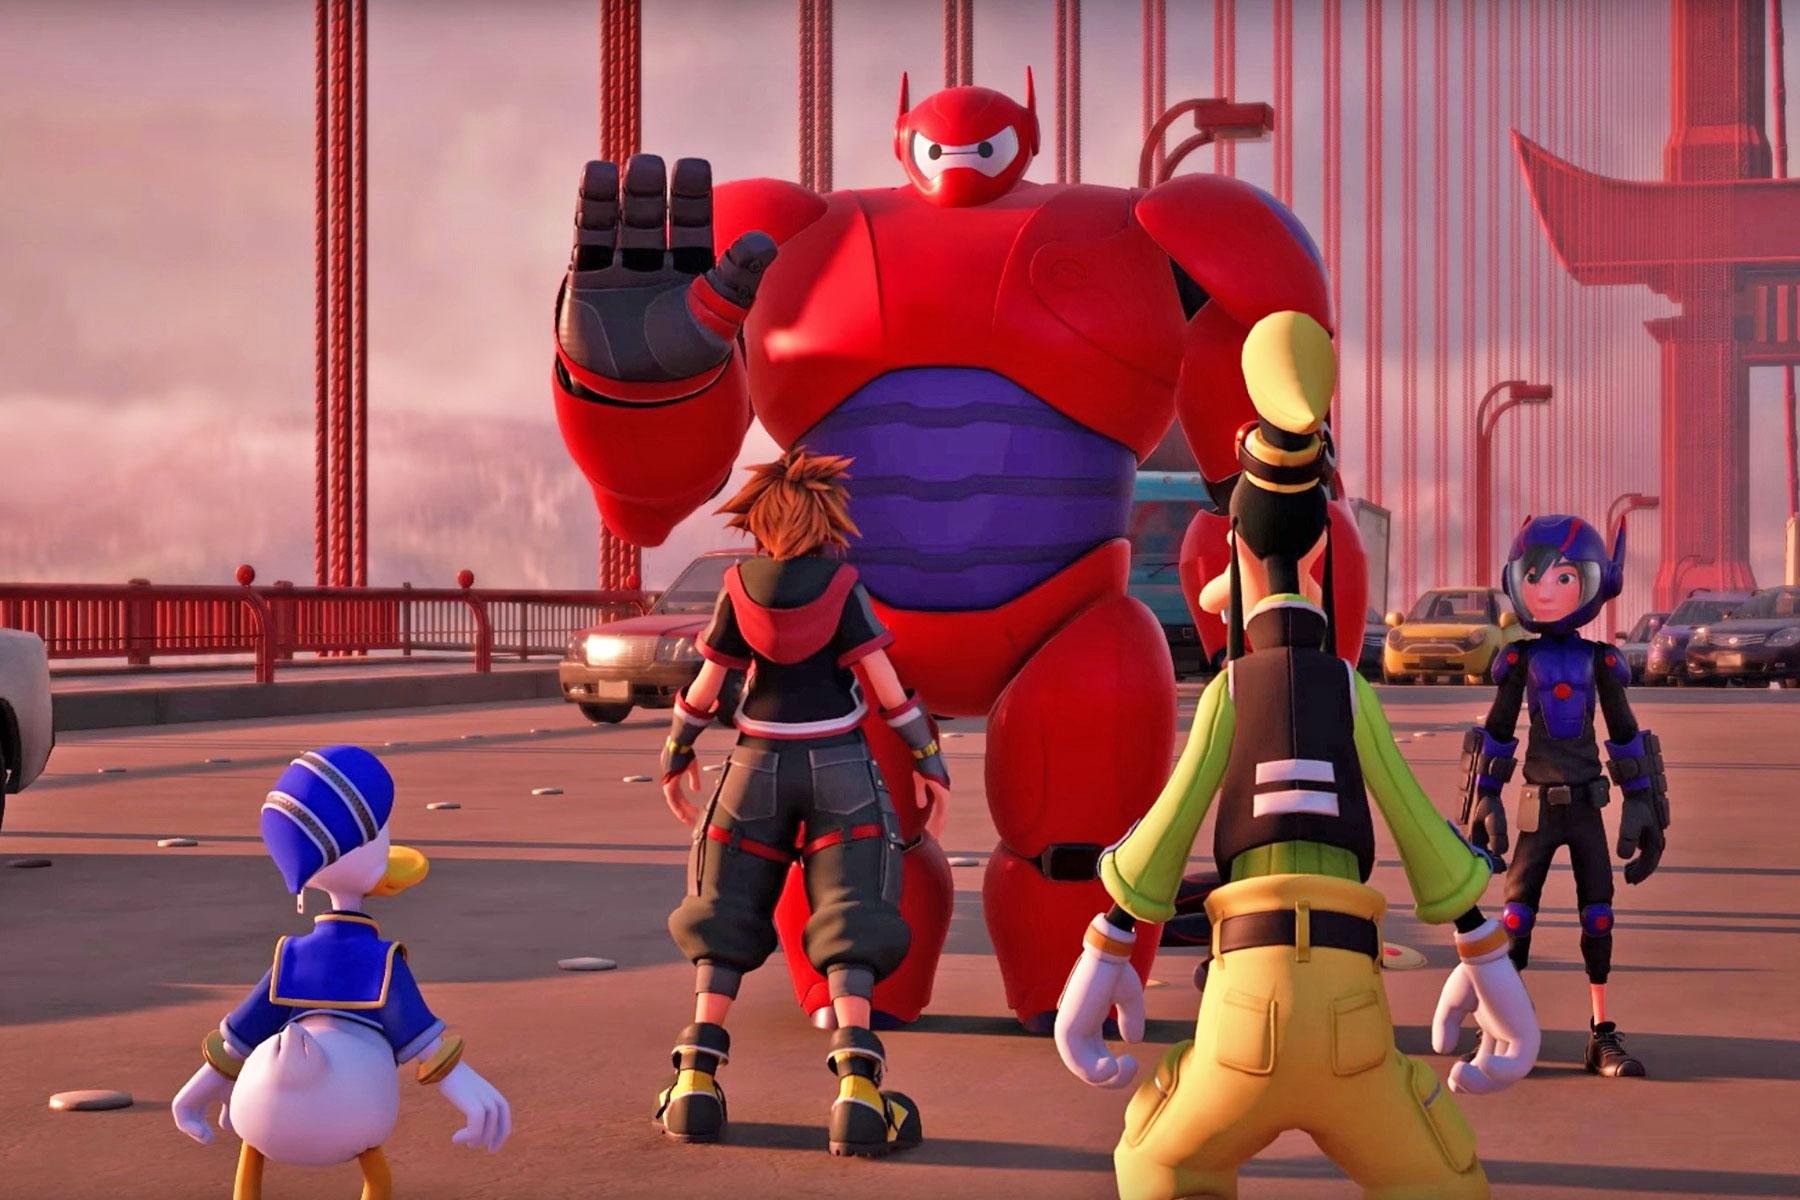 Kingdom Hearts 3 Trailer Shows Off Big Hero 6 World Engadget